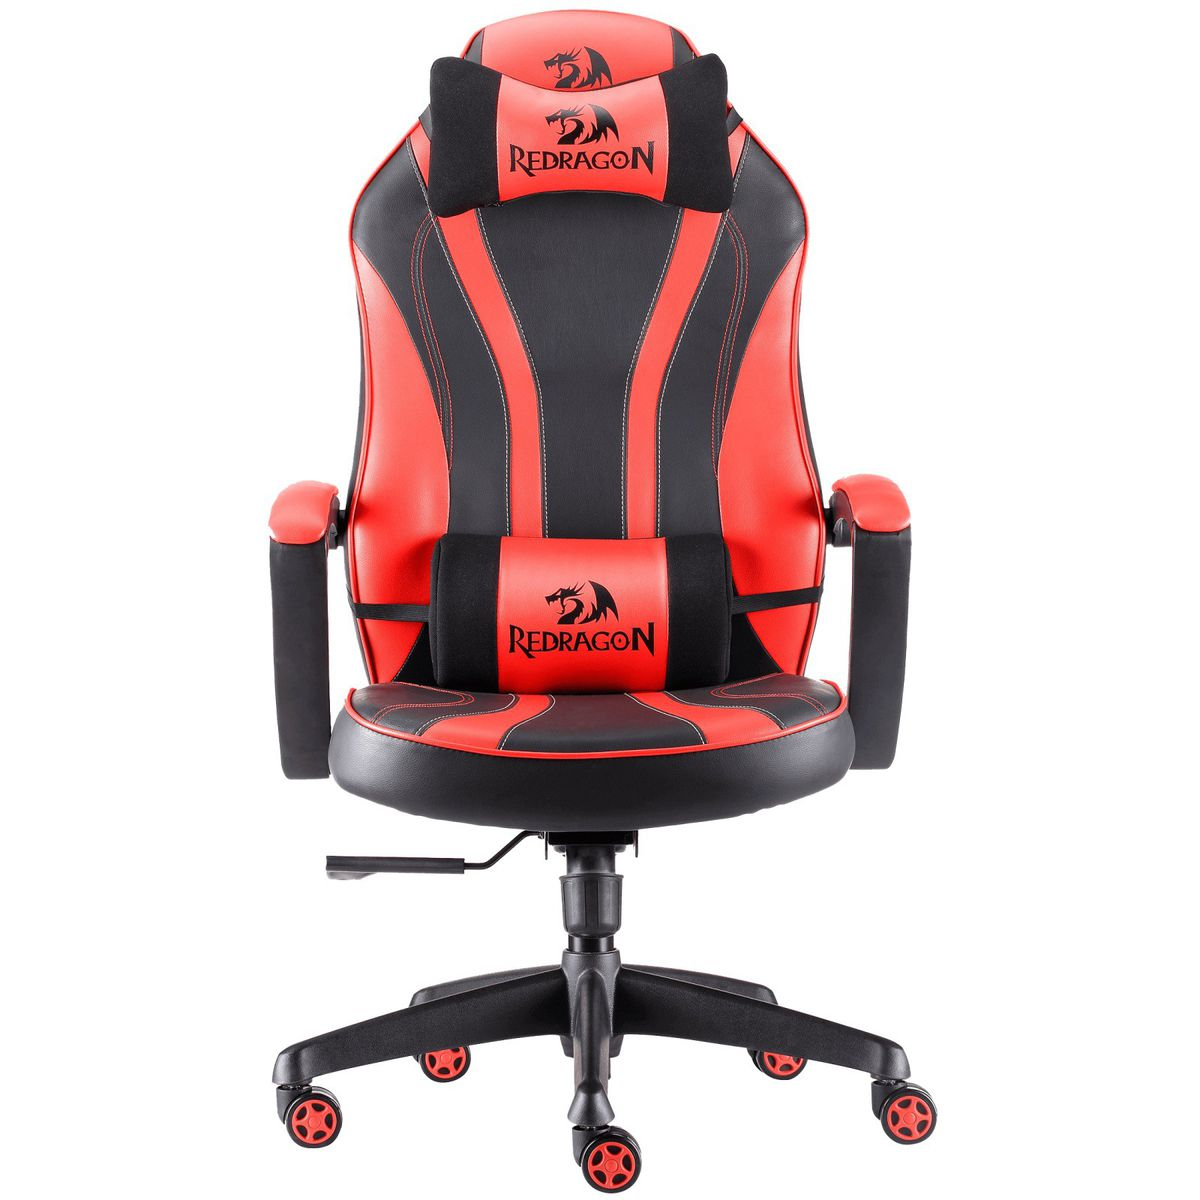 where to buy chair covers in cape town iron wrought chairs redragon - metis gaming black-red | online south africa takealot.com